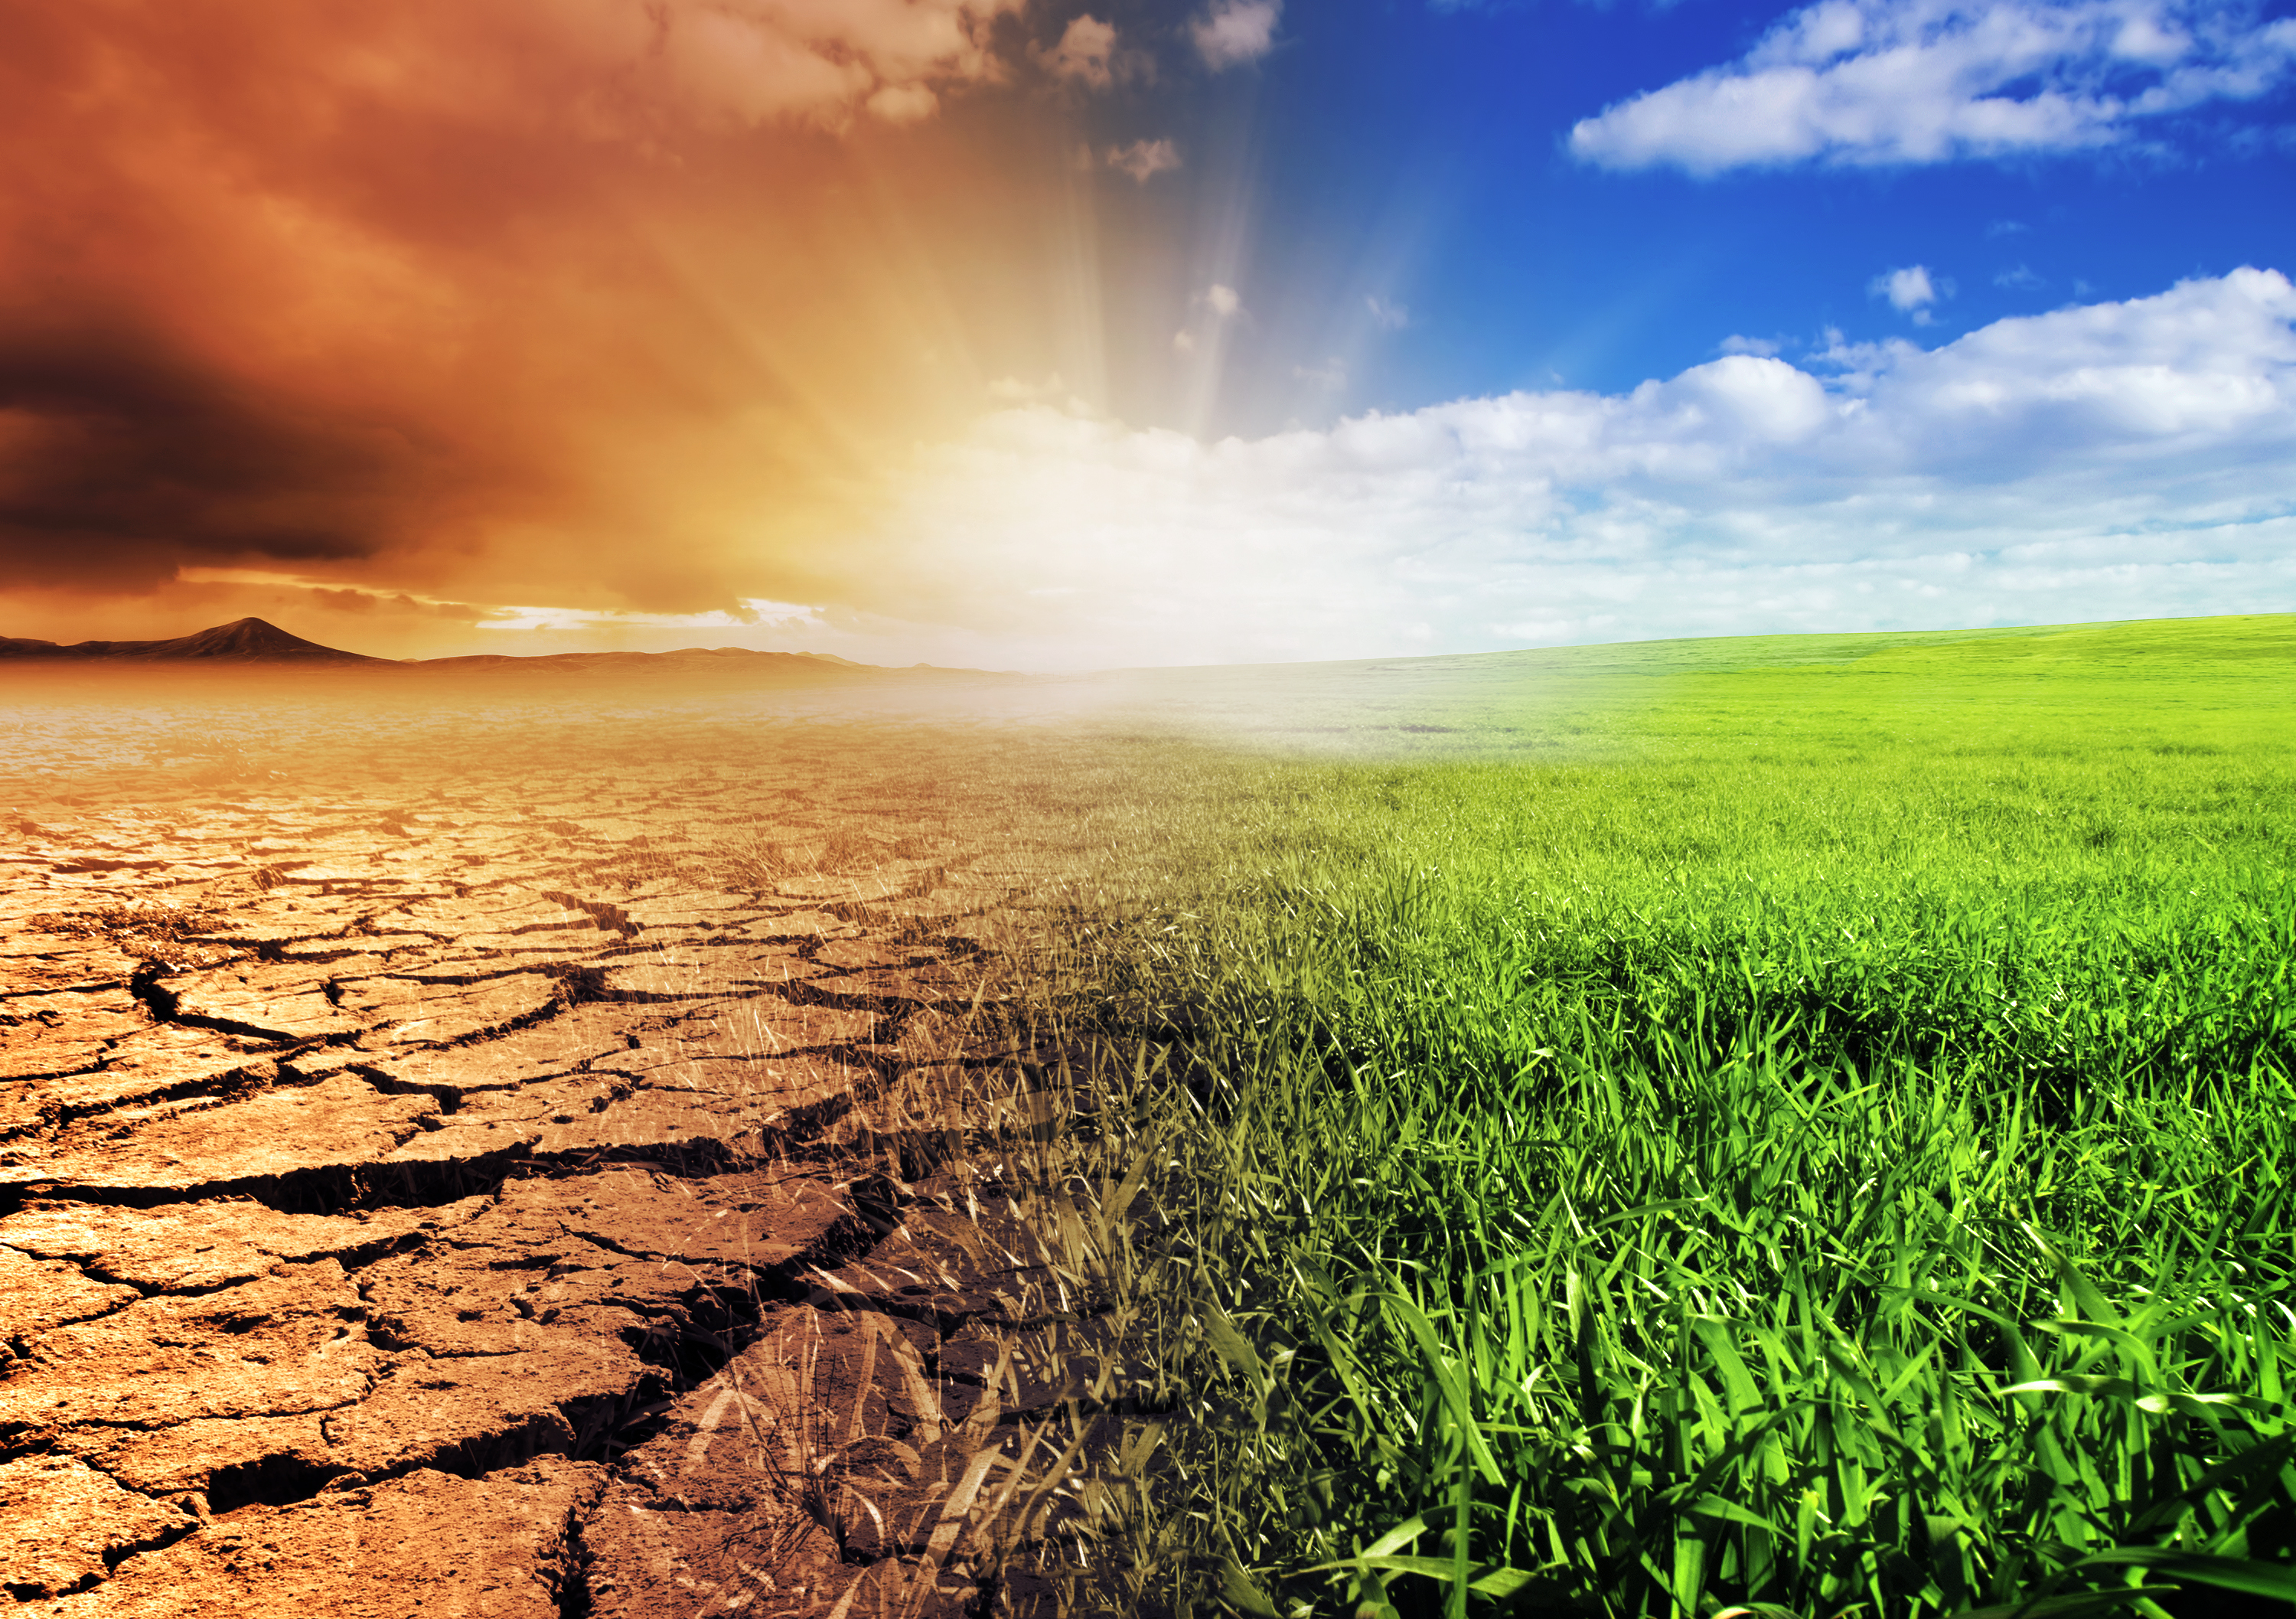 Is it hot in here? An analysis of climate change and sustainable energy data using TIBCO Spotfire®